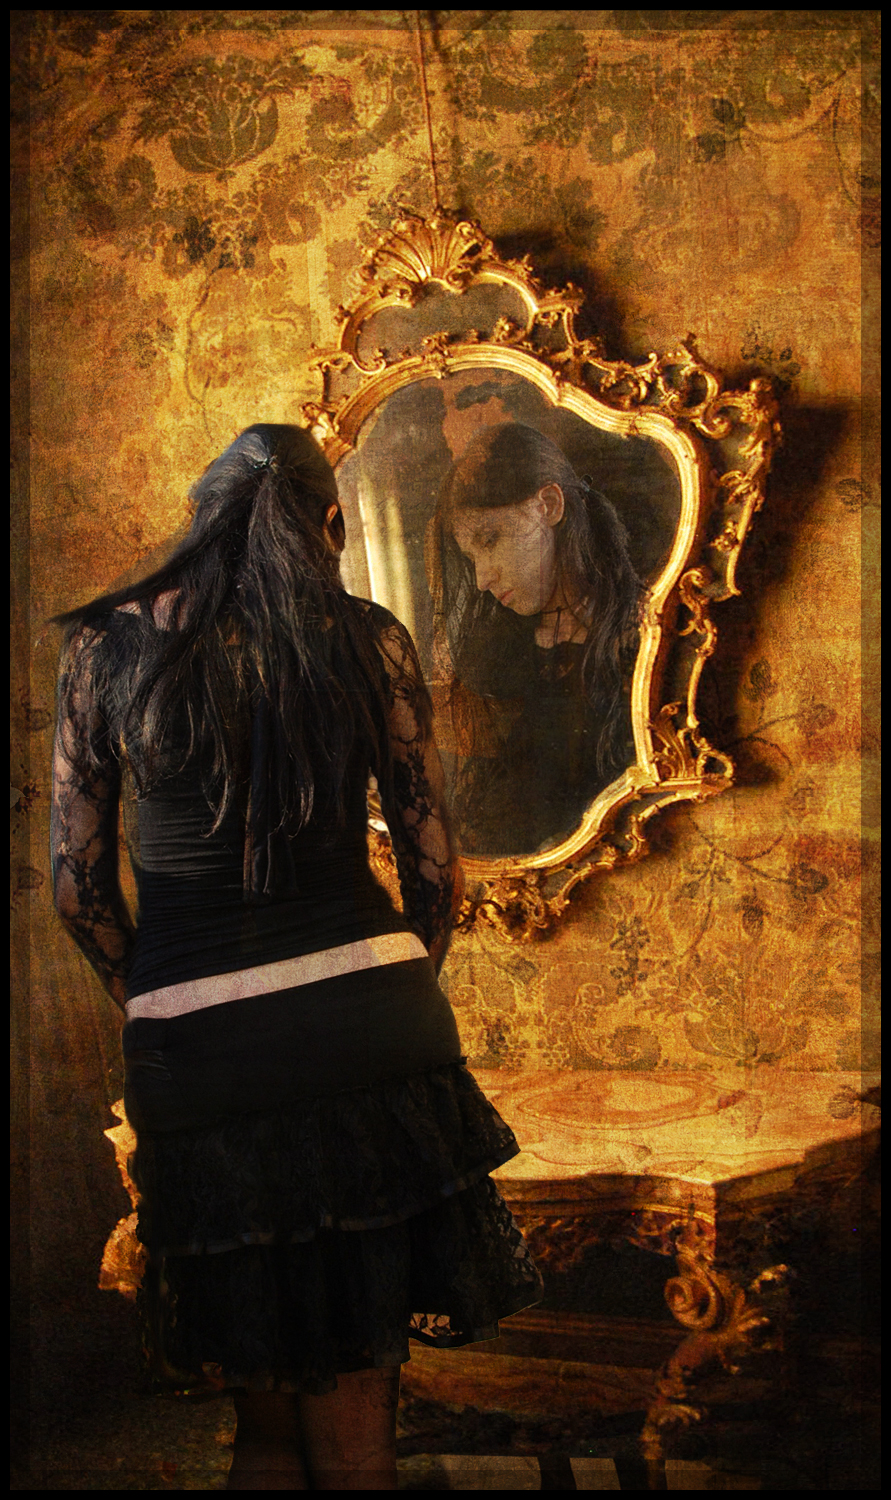 The_Mirror_by_xpedr0